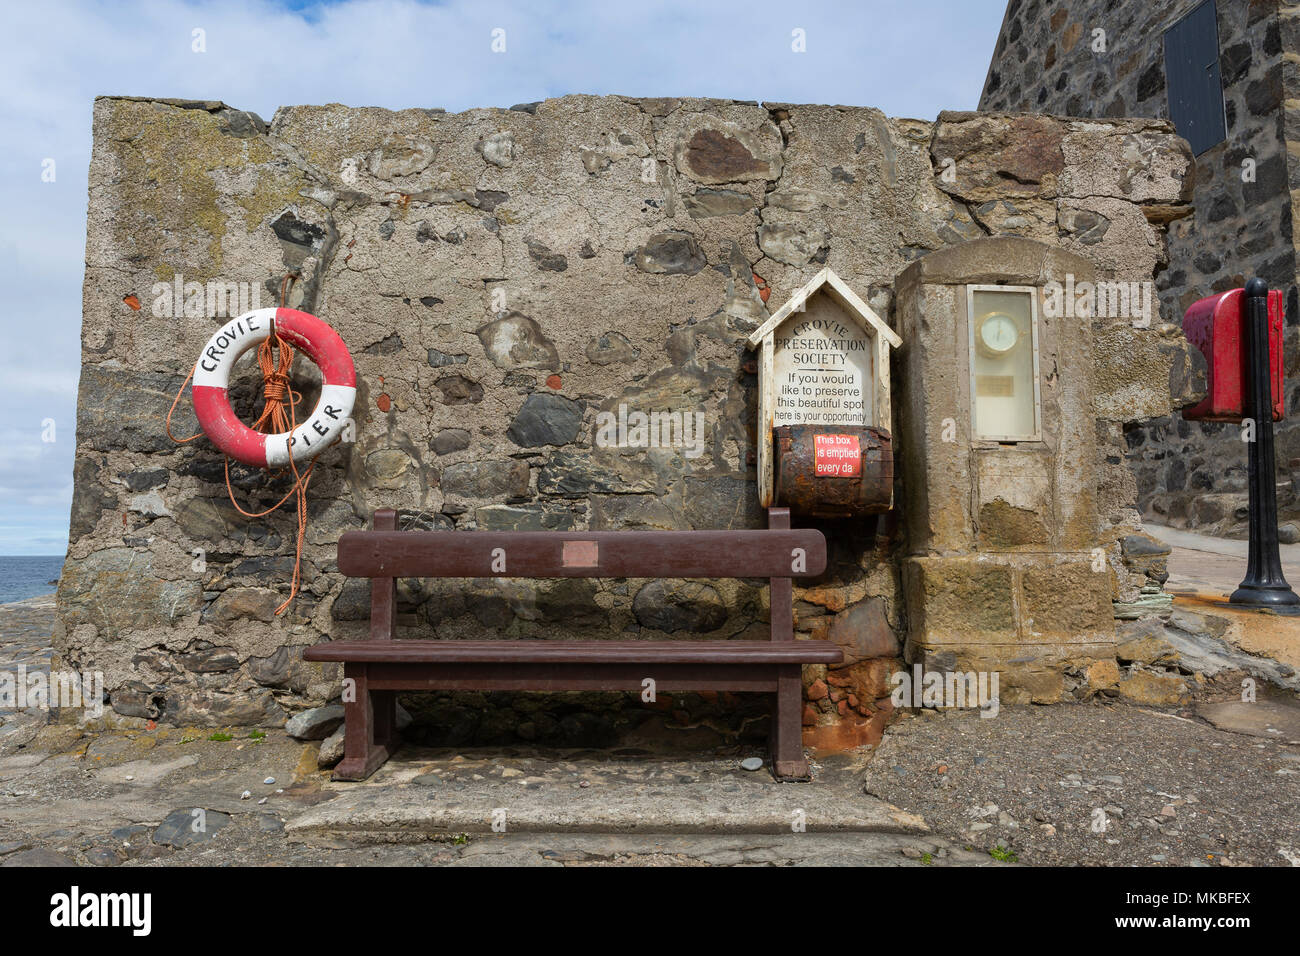 Seat, lifebelt, barometer and donation box at the pier, Crovie, Aberdeenshire, Scotland, UK - Stock Image